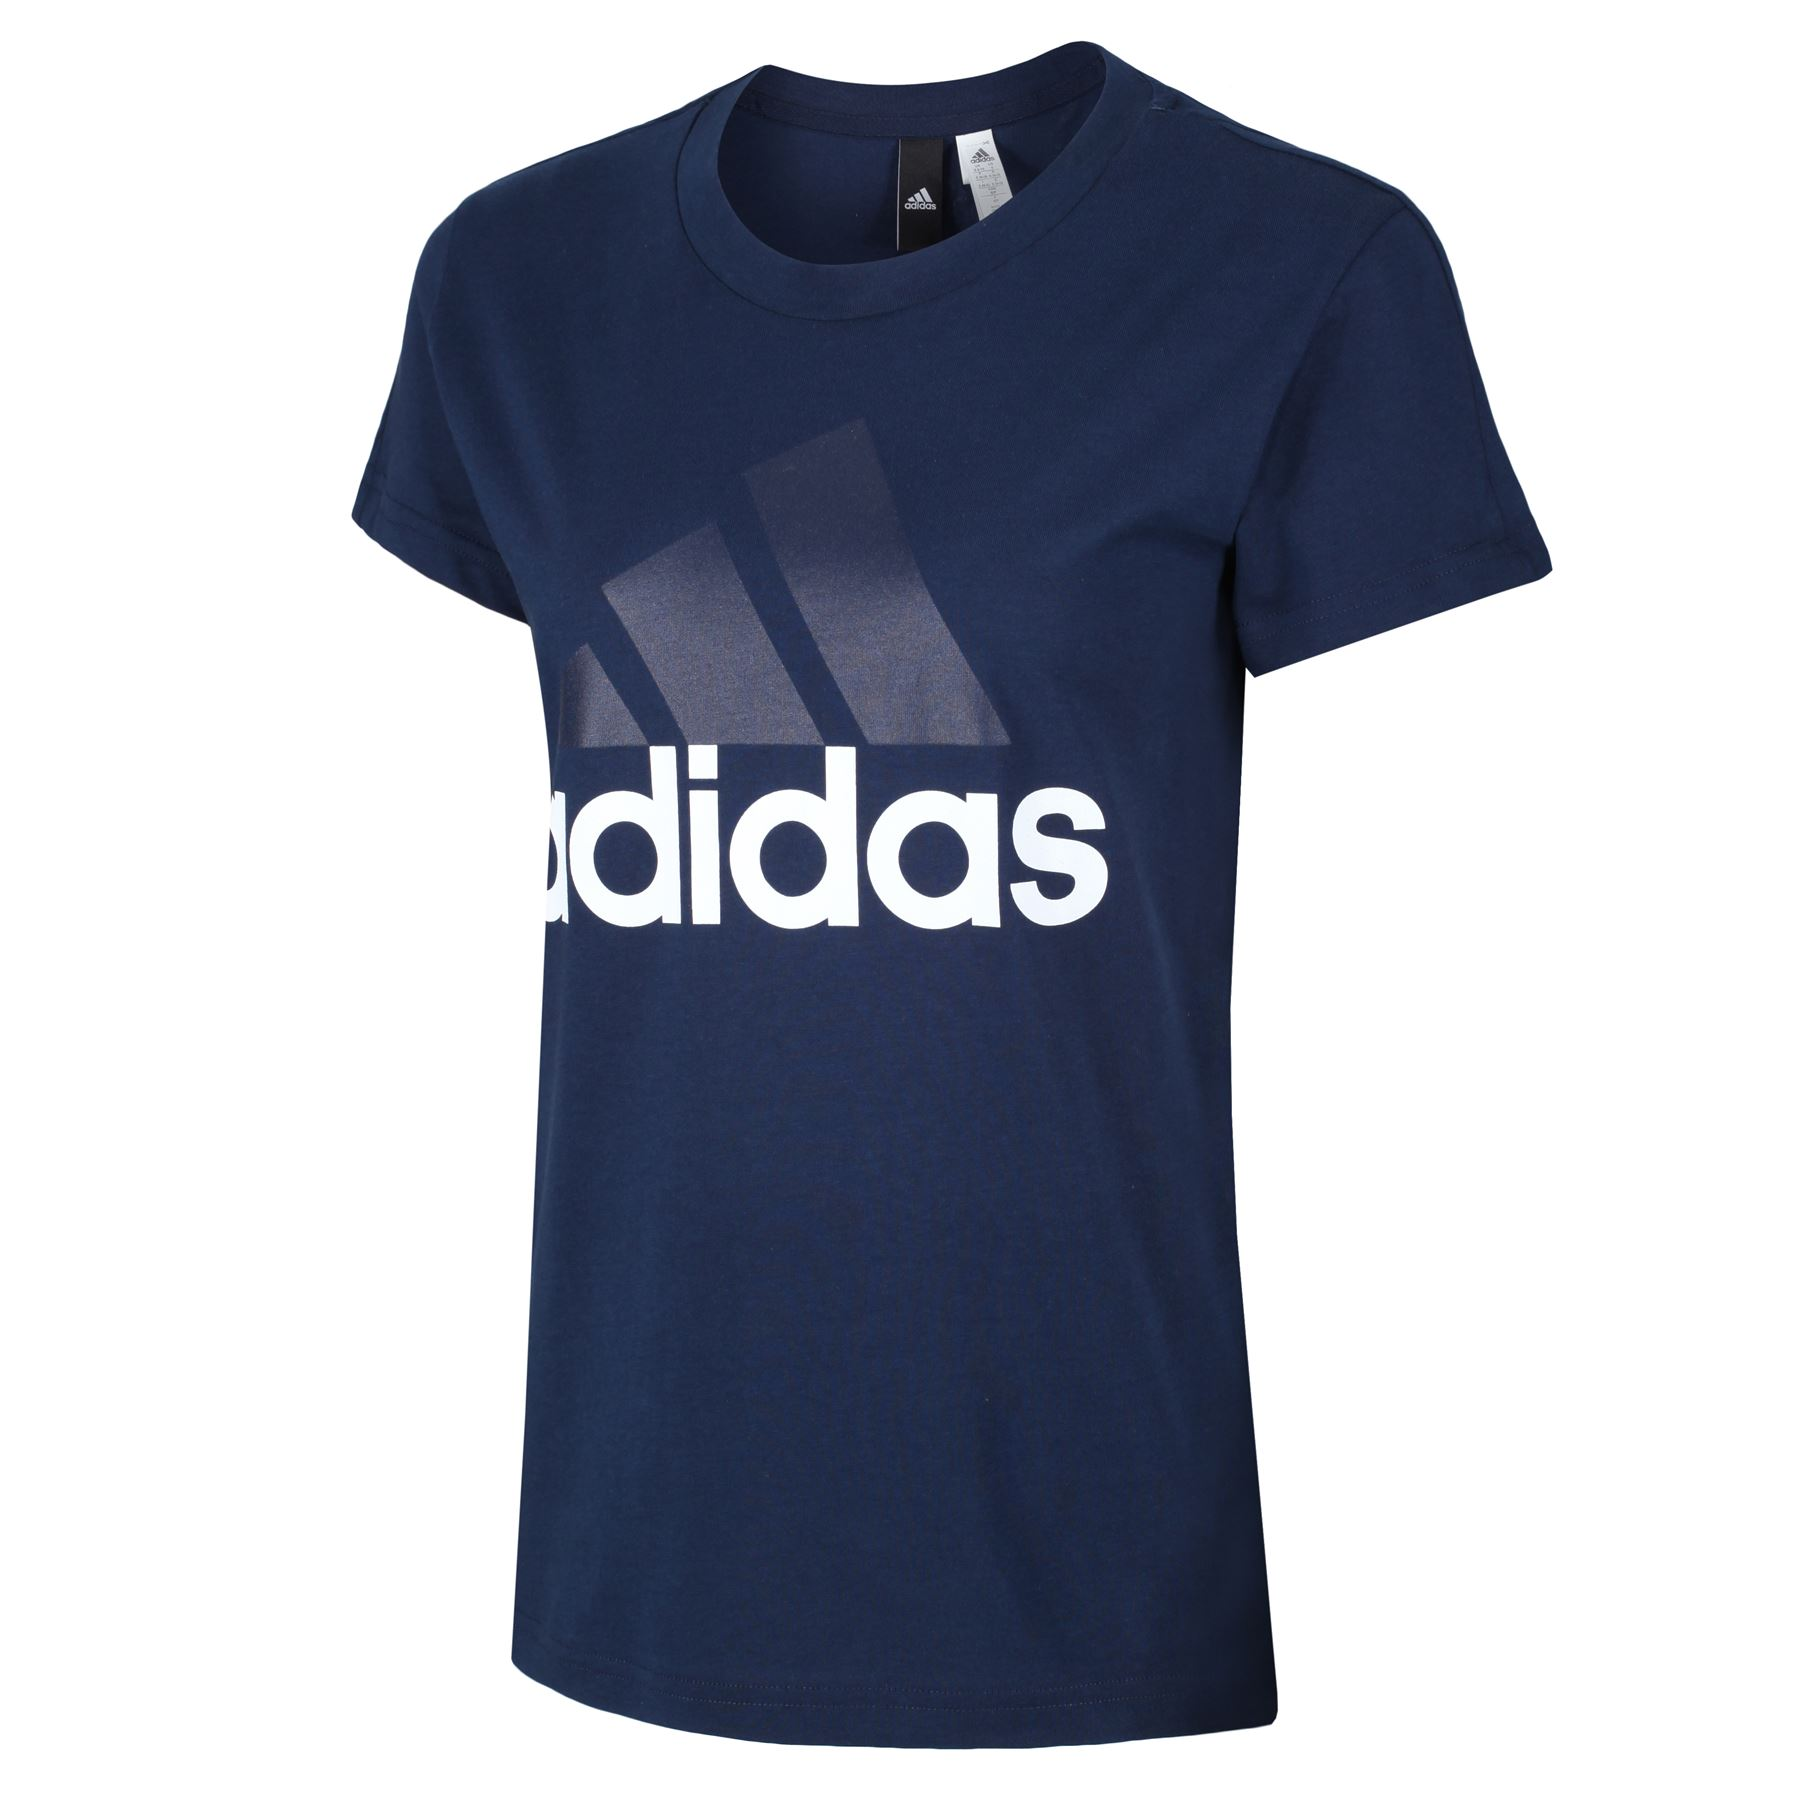 adidas-WOMEN-039-S-ESSENTIALS-LINEAR-T-SHIRT-GYM-BLACK-PINK-WHITE-NAVY-GIRLS-LADIES thumbnail 14